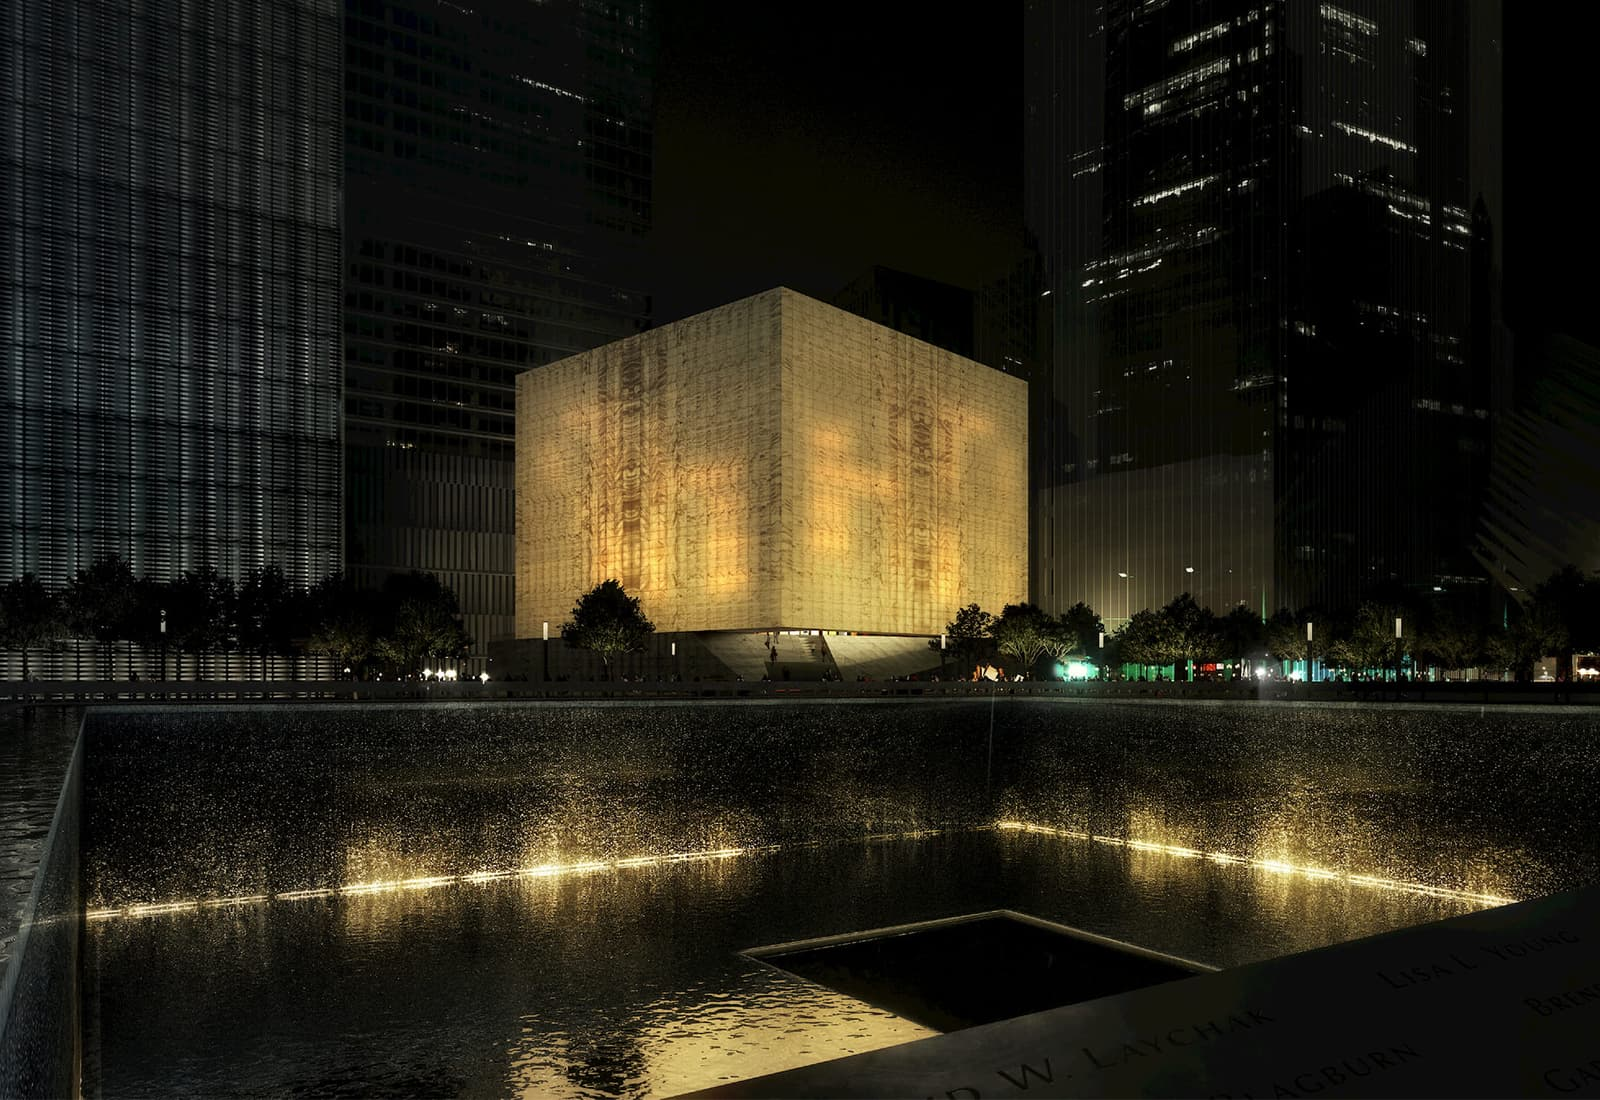 Rendering of the upcoming Perelman Performing Arts Center in downtown Manhattan, a new multidisciplinary venue offering opportunities to create and present original work in theater, dance, music, and chamber opera.